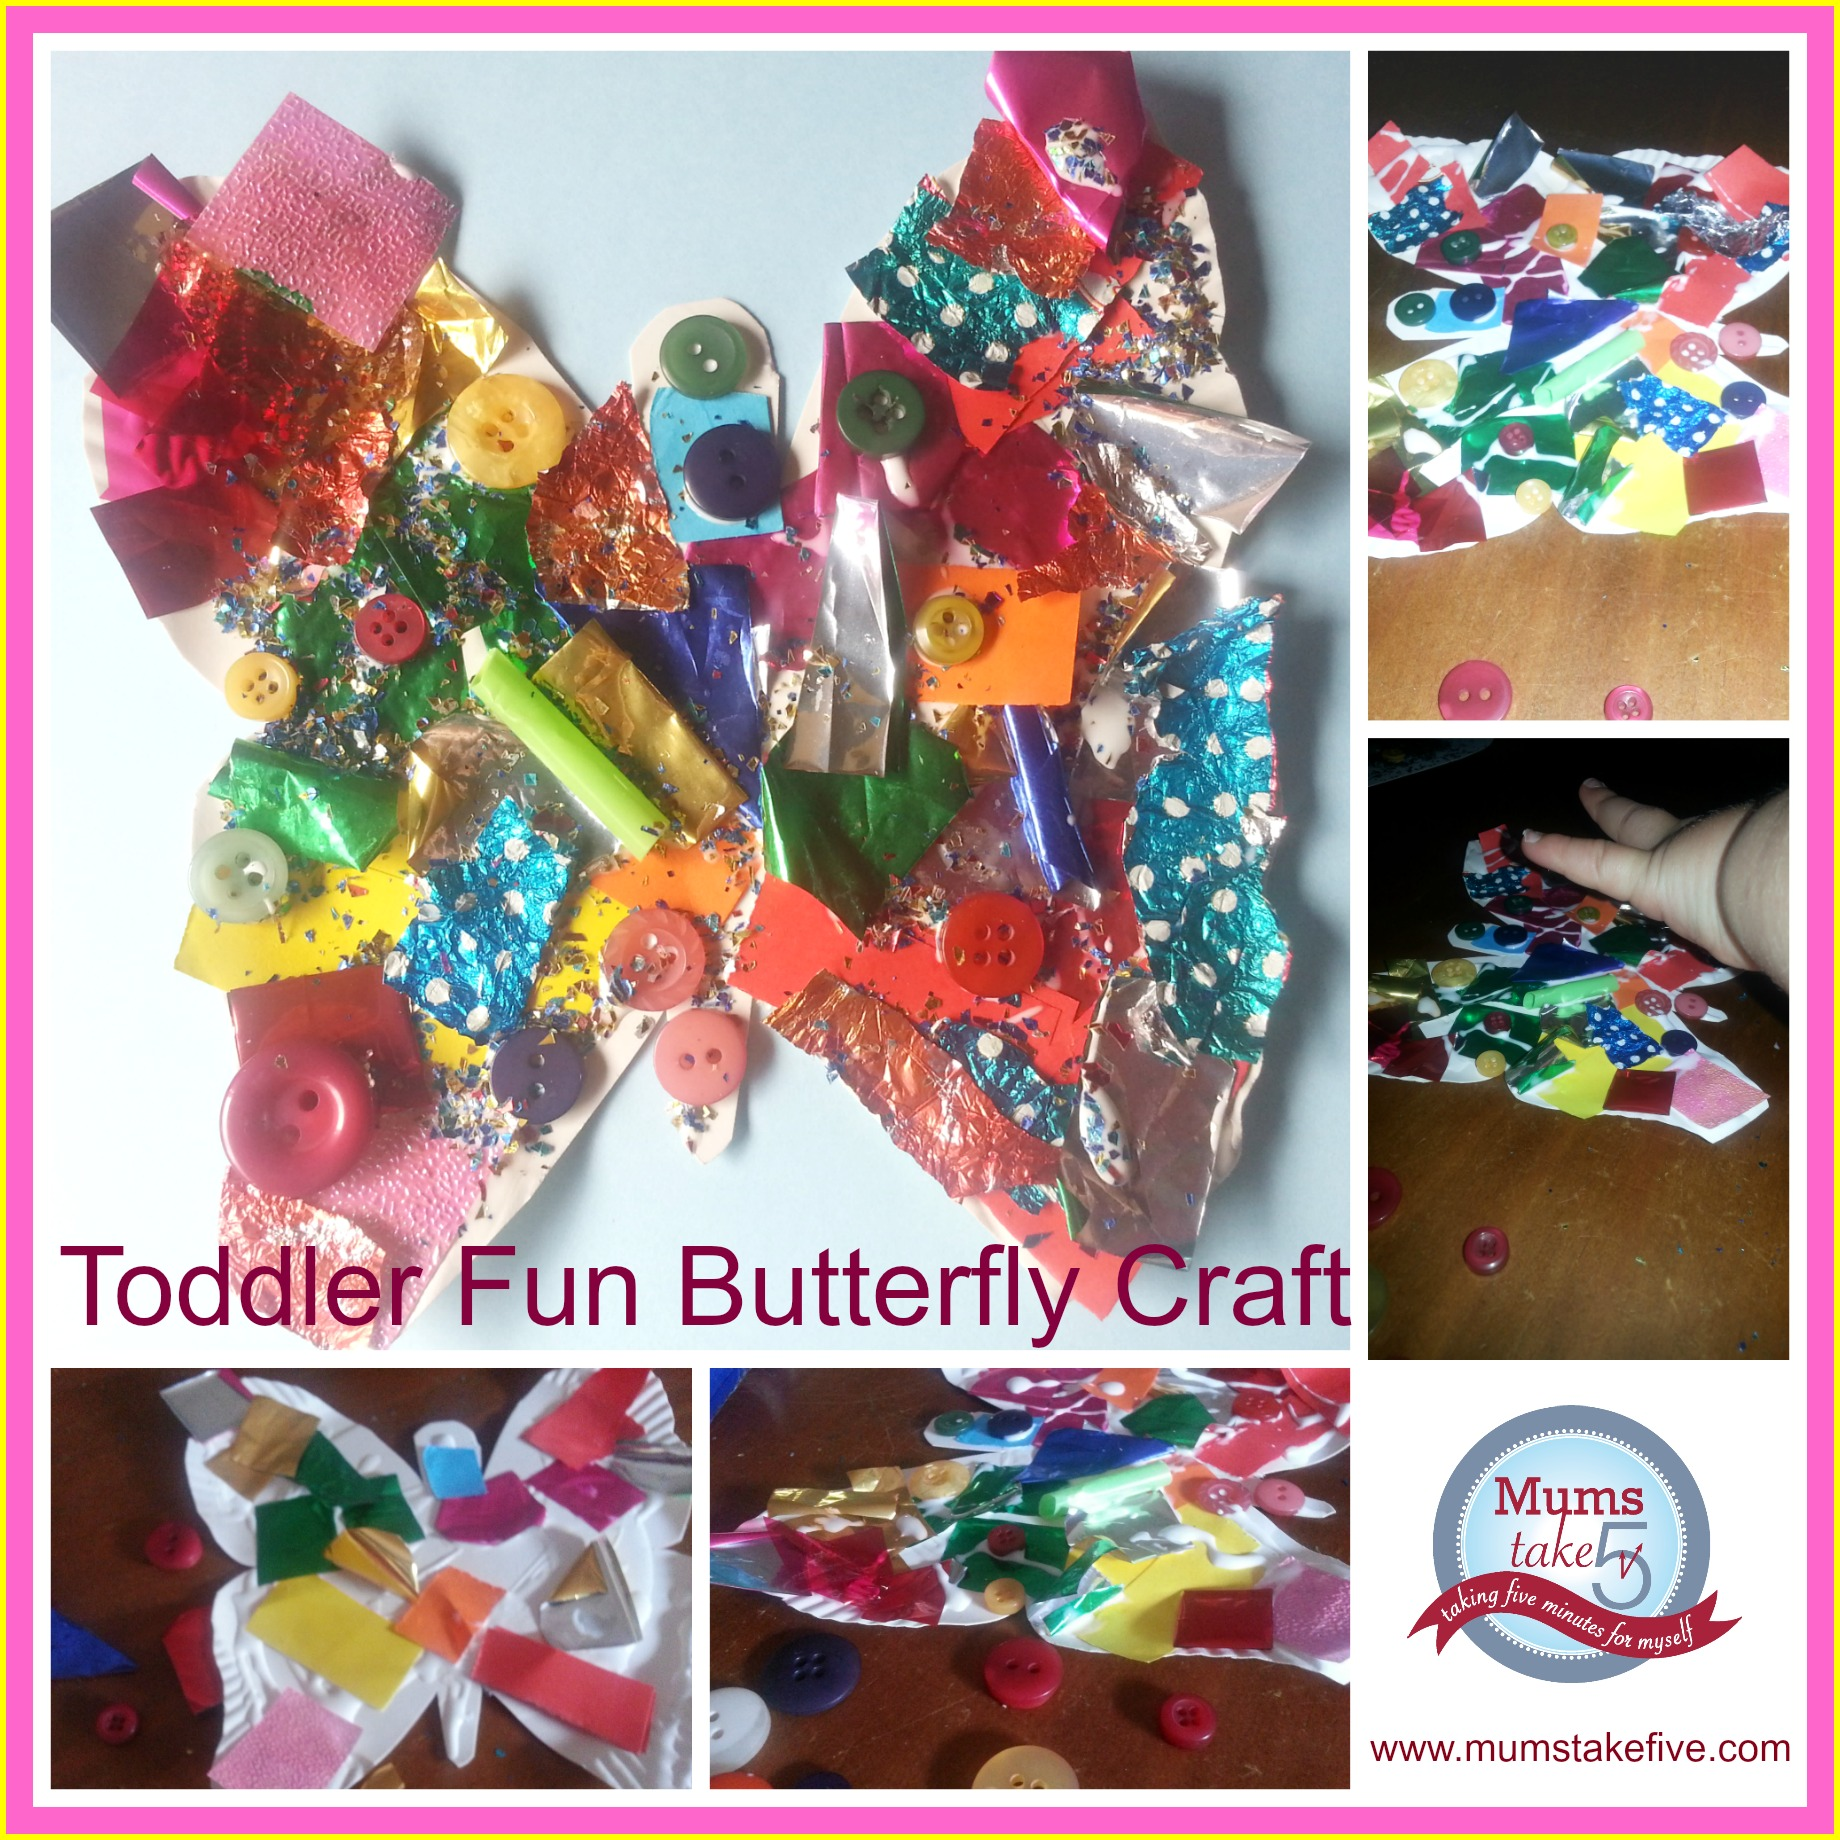 BUtterfly kids craft collage